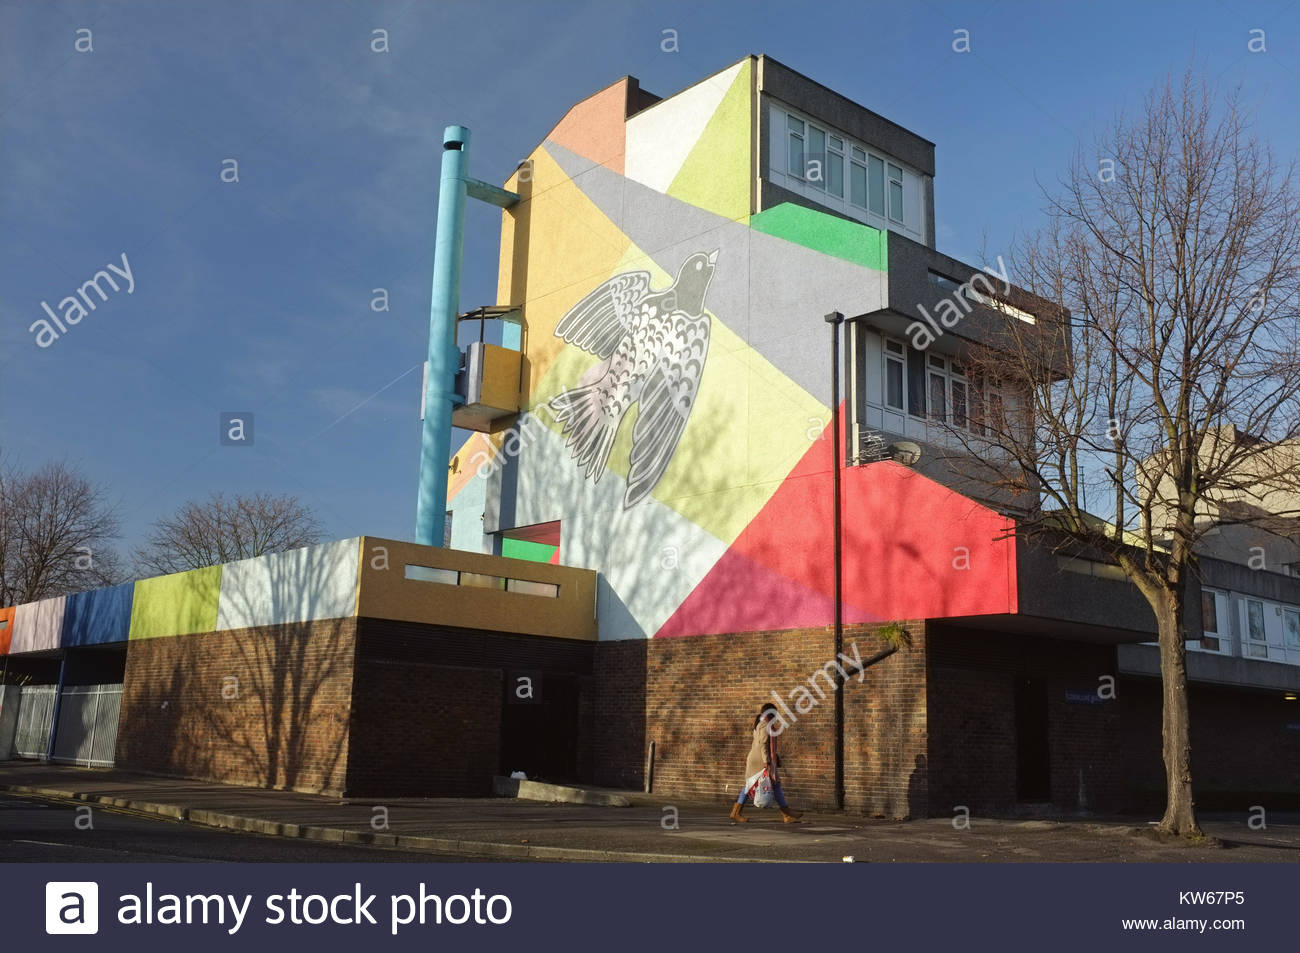 Colourful mural, Post-war housing estate, Thamesmead, near Abbey Wood, south-east London, England, United Kingdom, - Stock Image